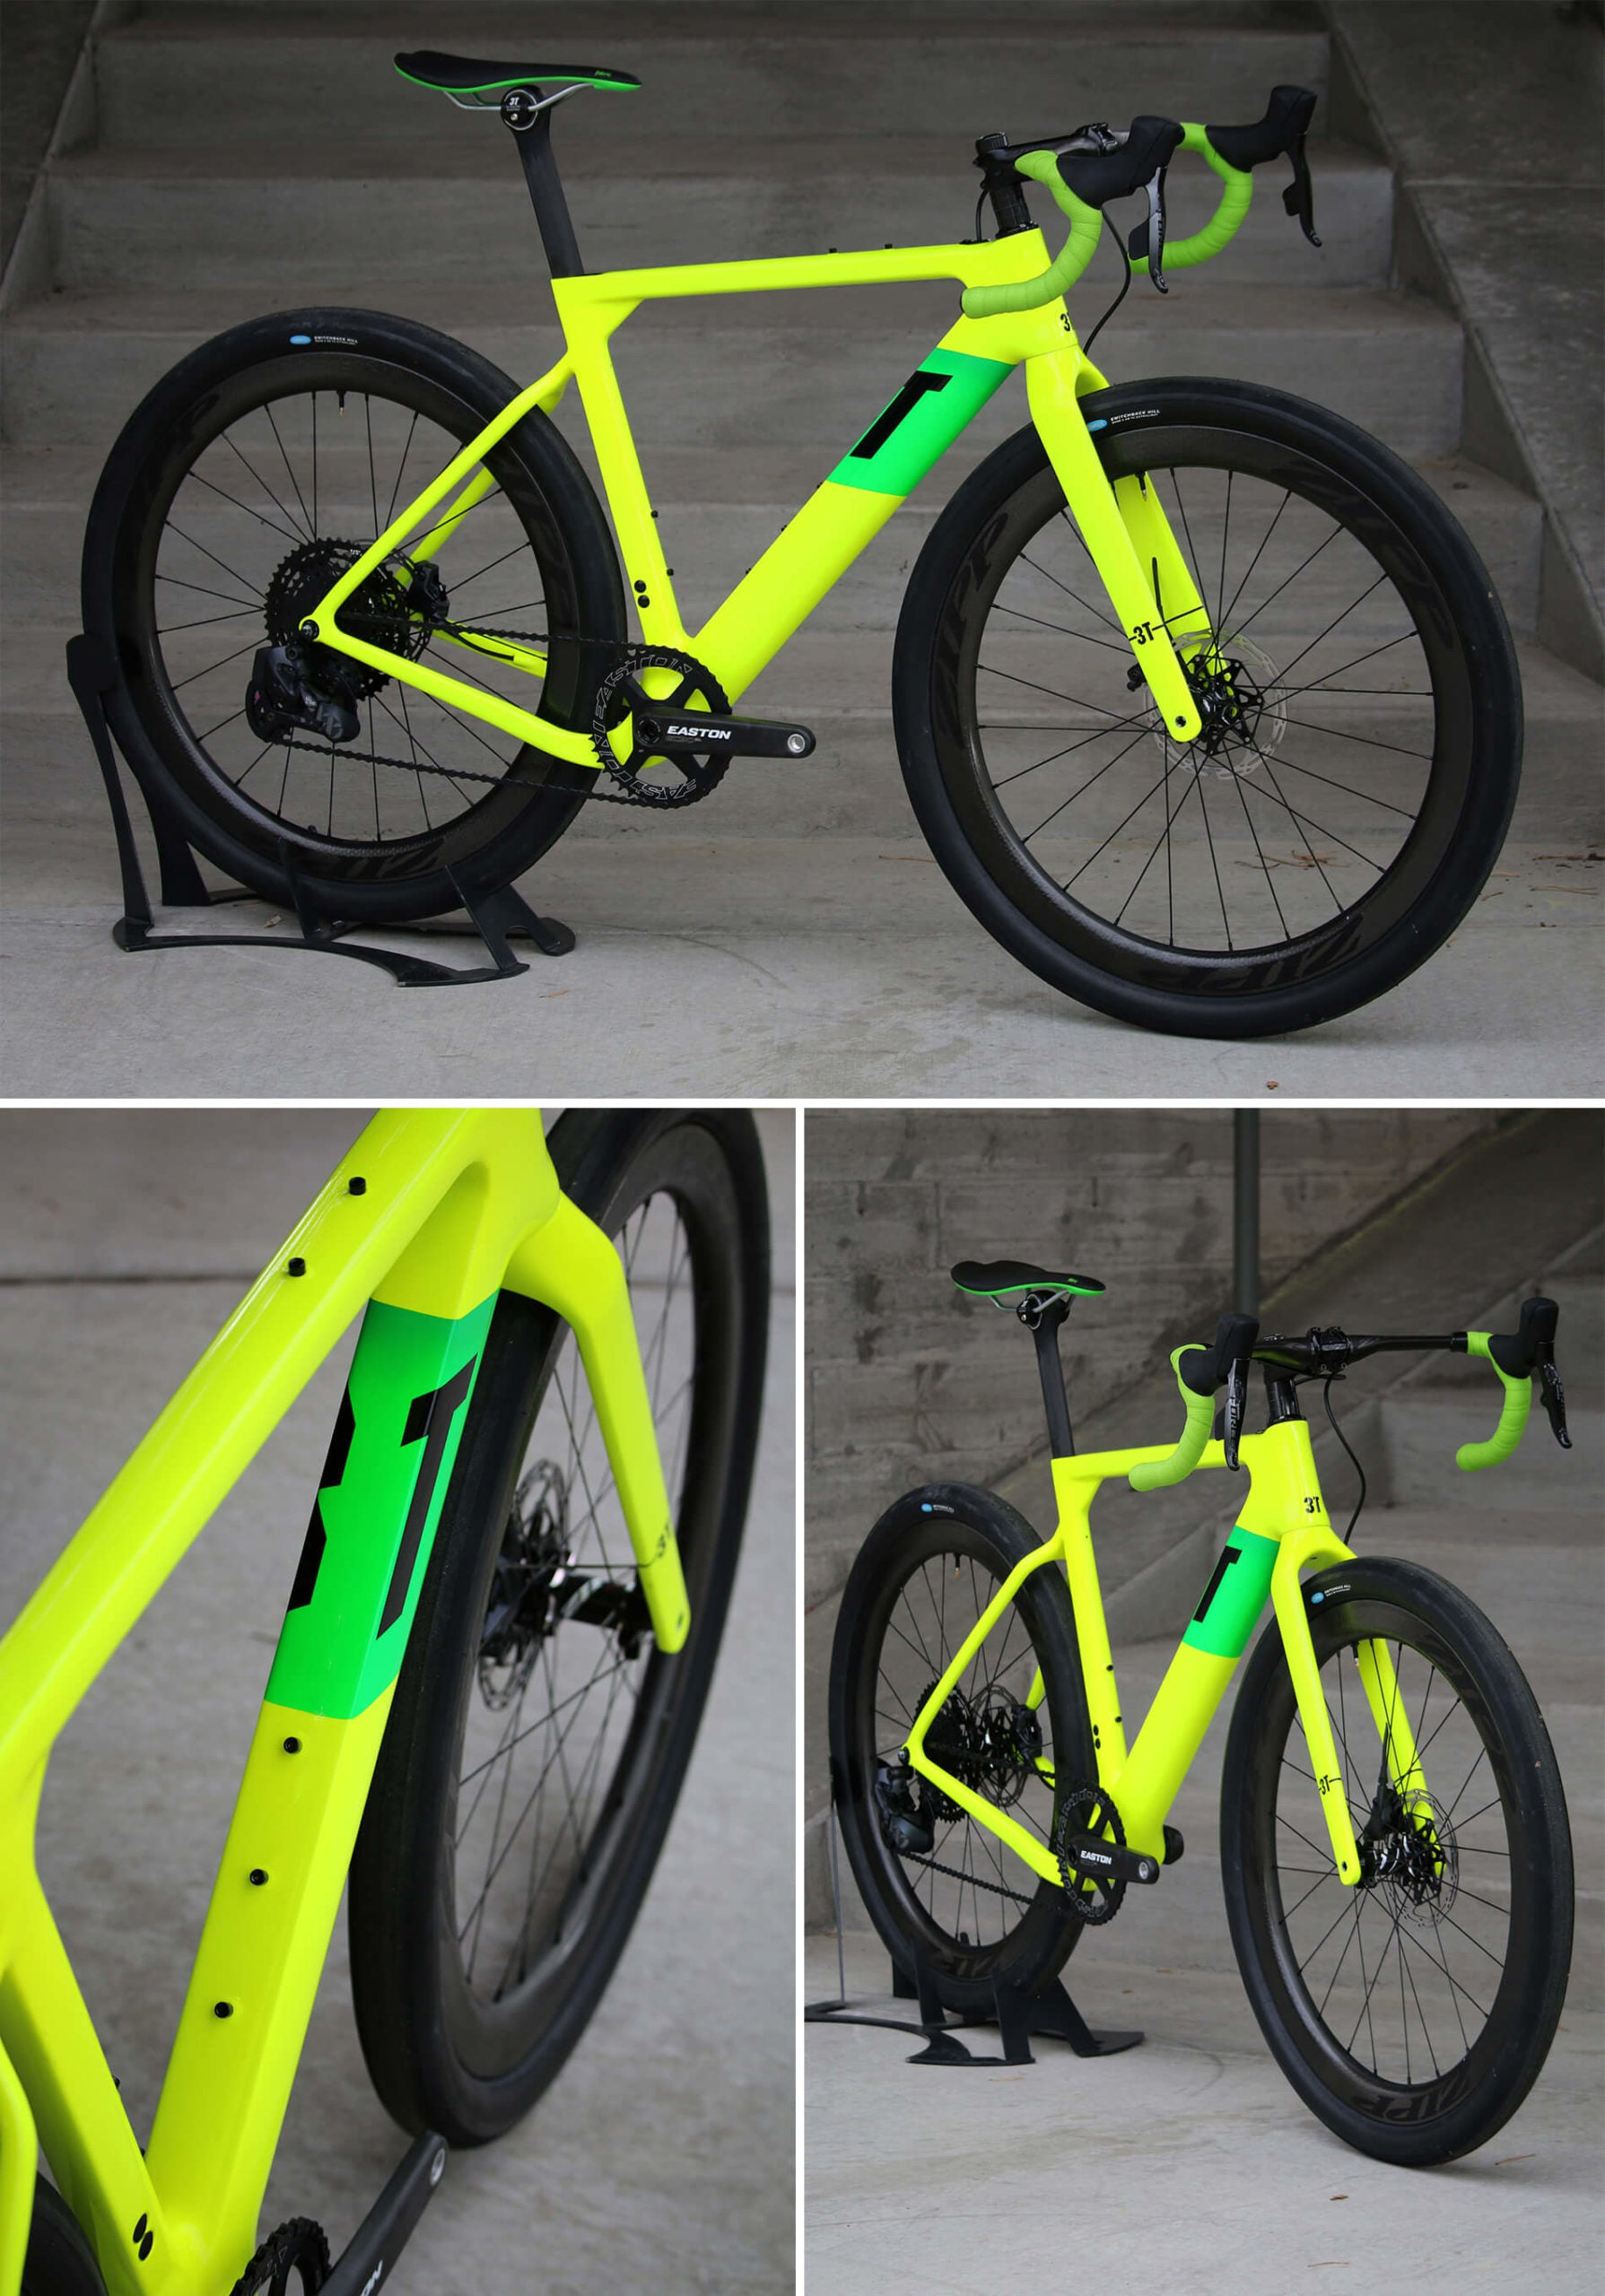 3T Exploro Ready to Paint RTP - Contender Bicycles